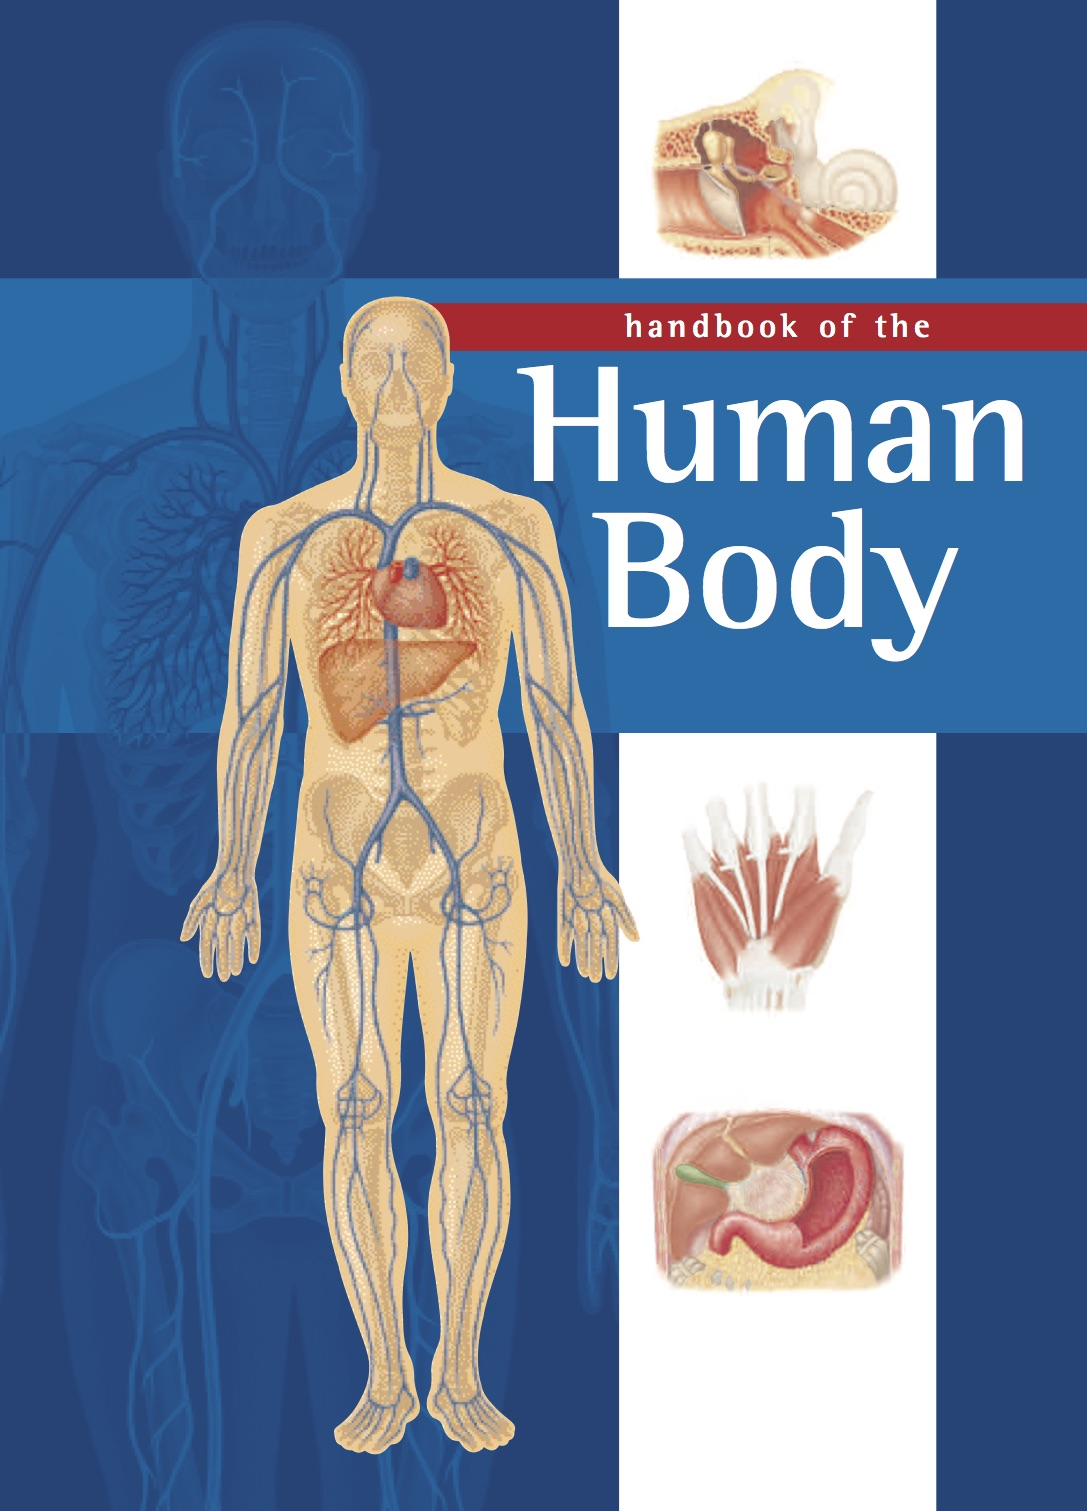 Handbook of the Human Body